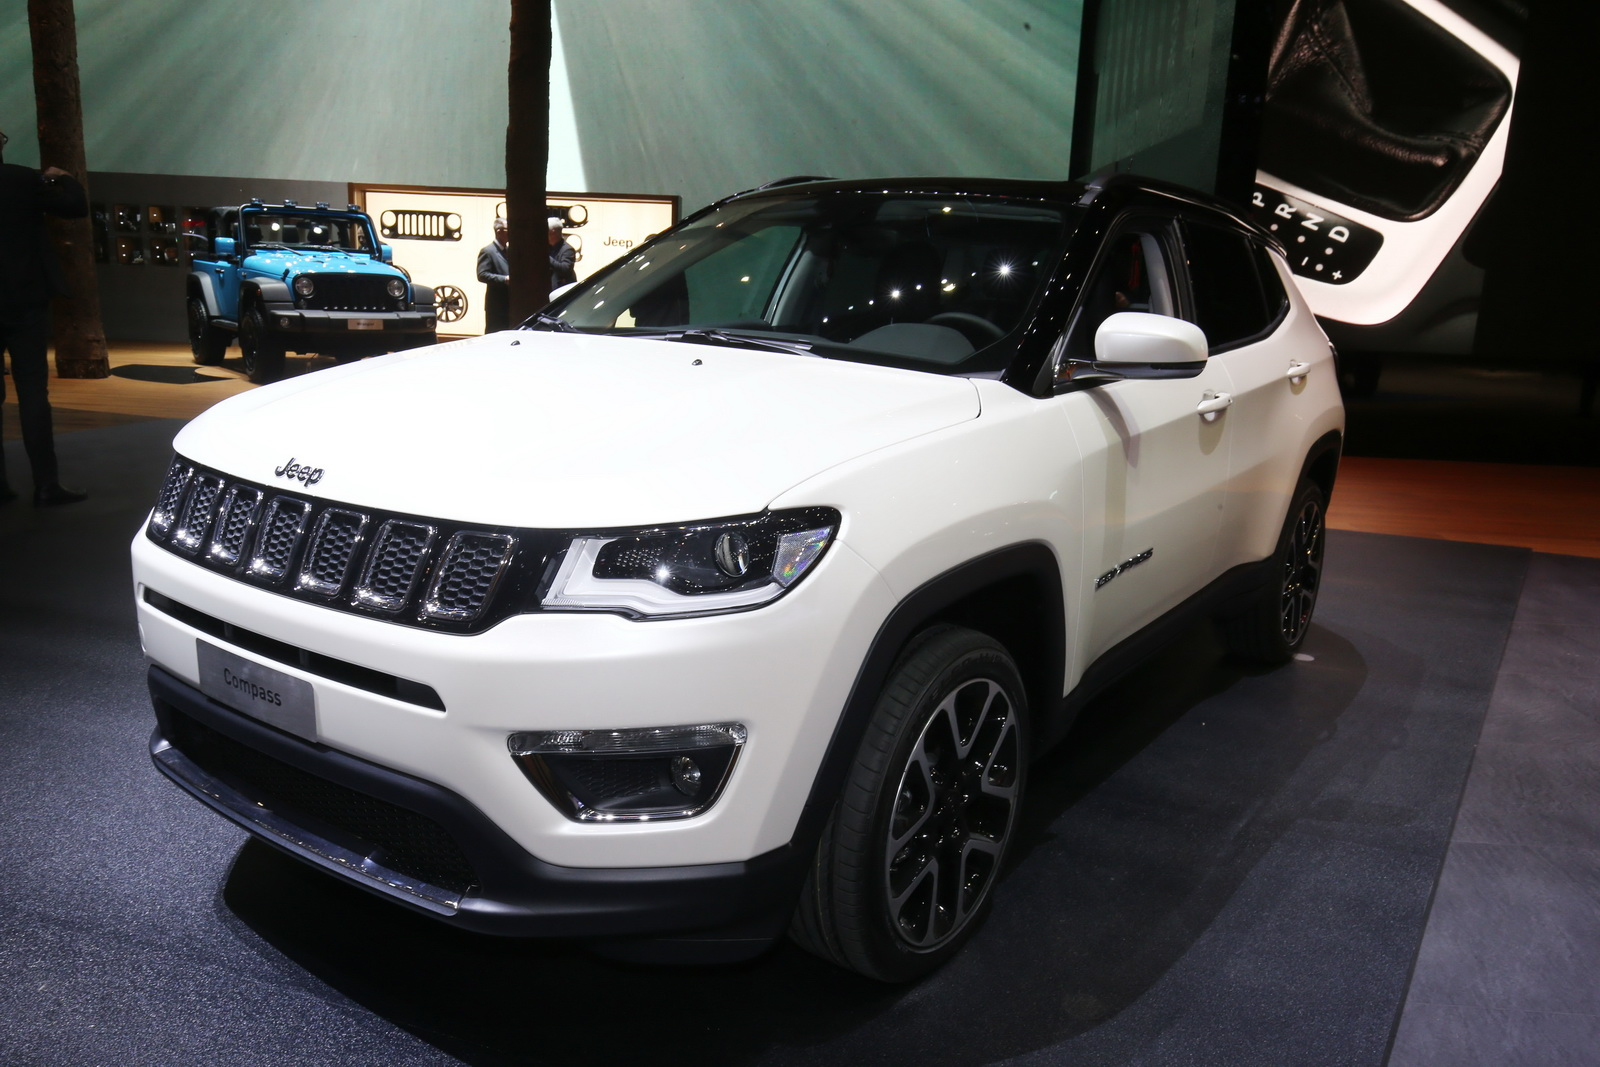 new euro spec jeep compass lands in geneva to challenge the nissan qashqai carscoops. Black Bedroom Furniture Sets. Home Design Ideas